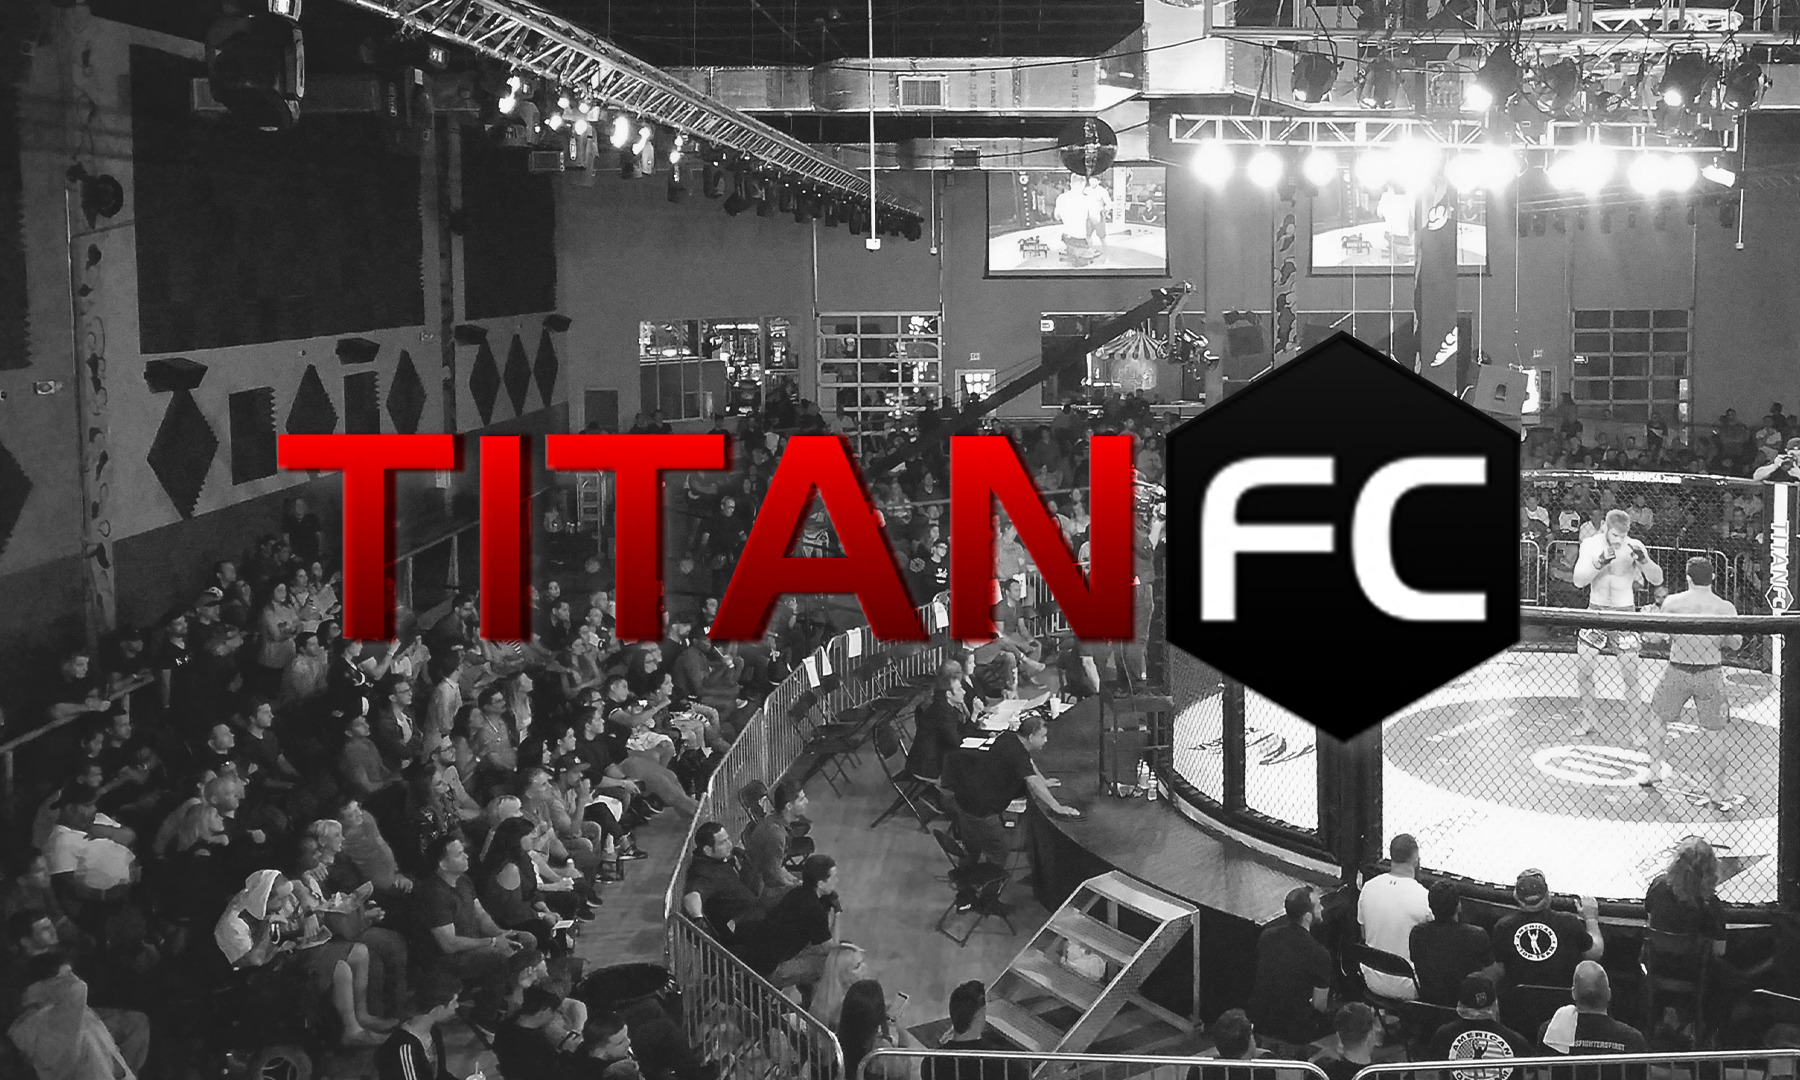 LIVE MMA Titan Fighting Championship at Xtreme Action Park